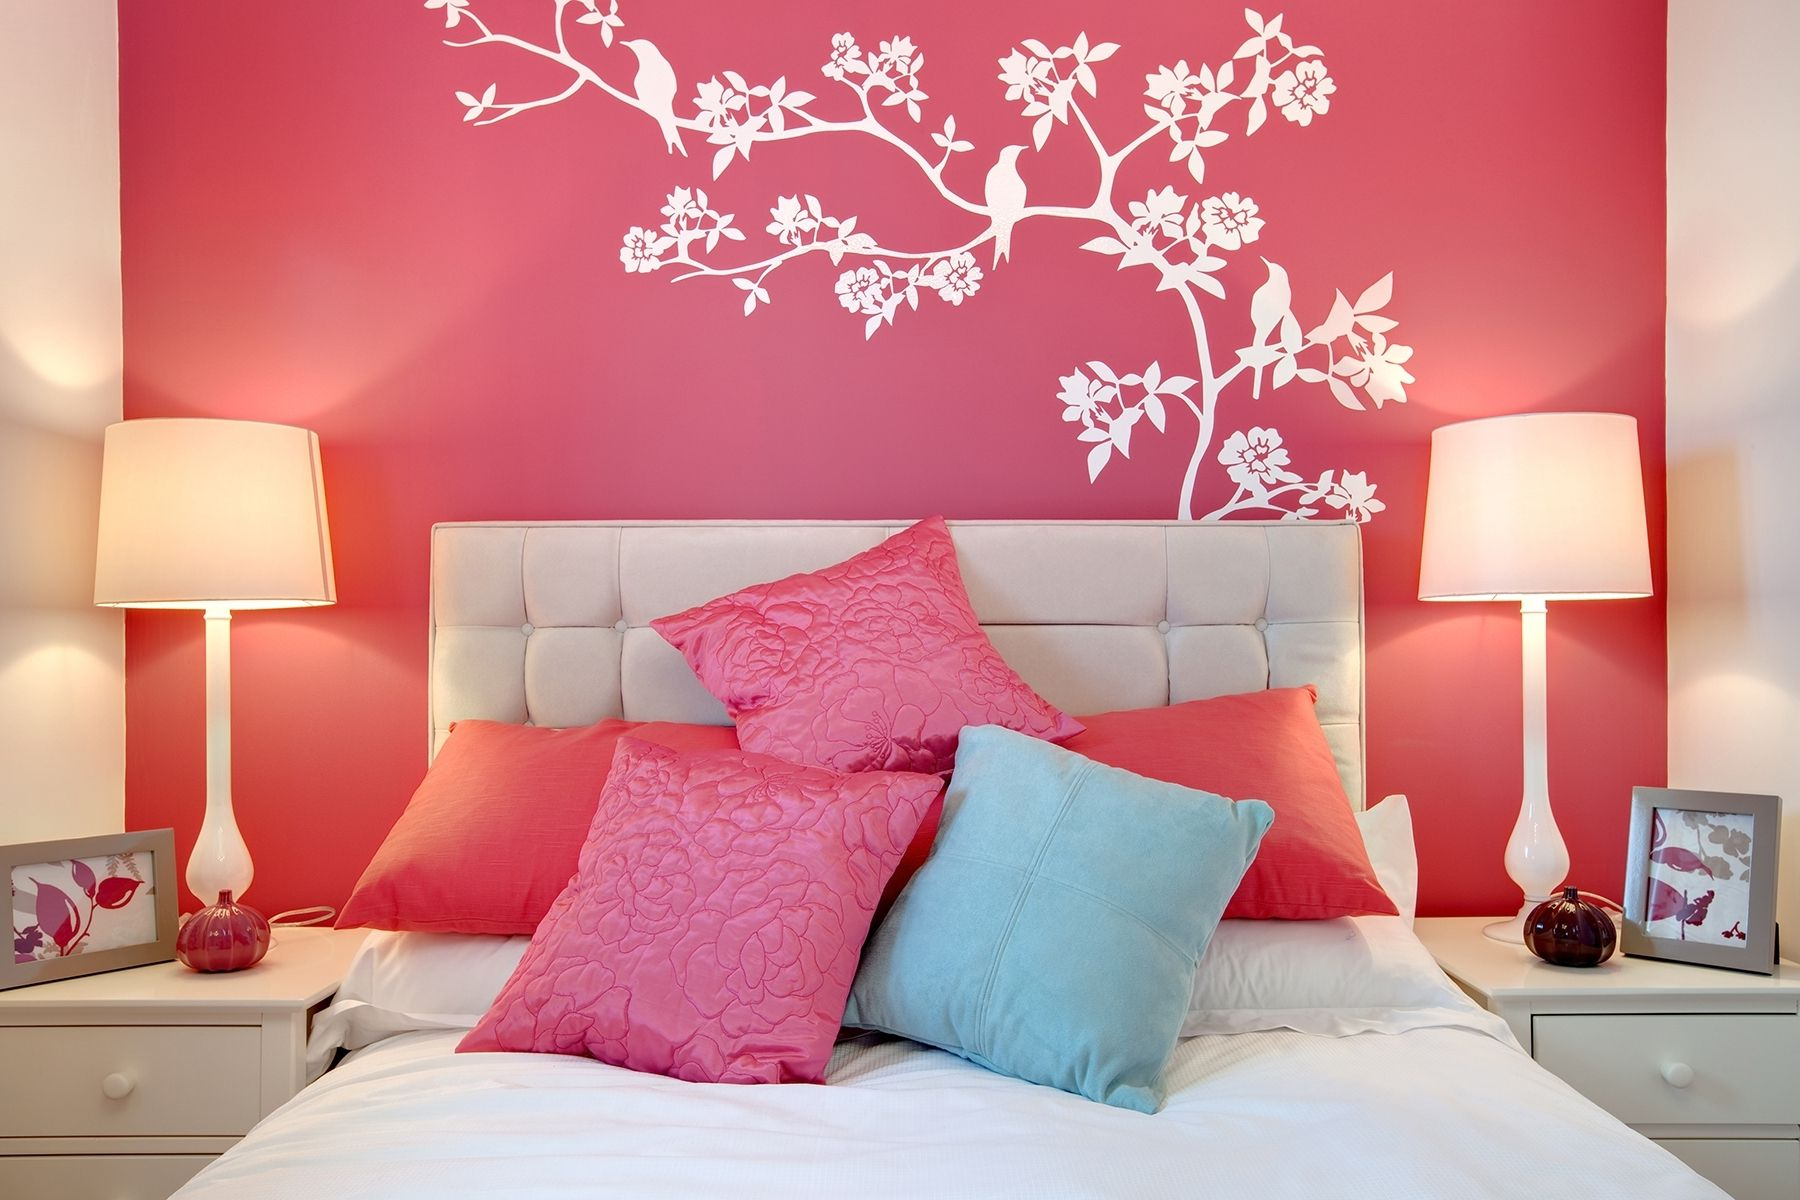 Image Result For Royal Play Images Bedroom Wall Designs Pink